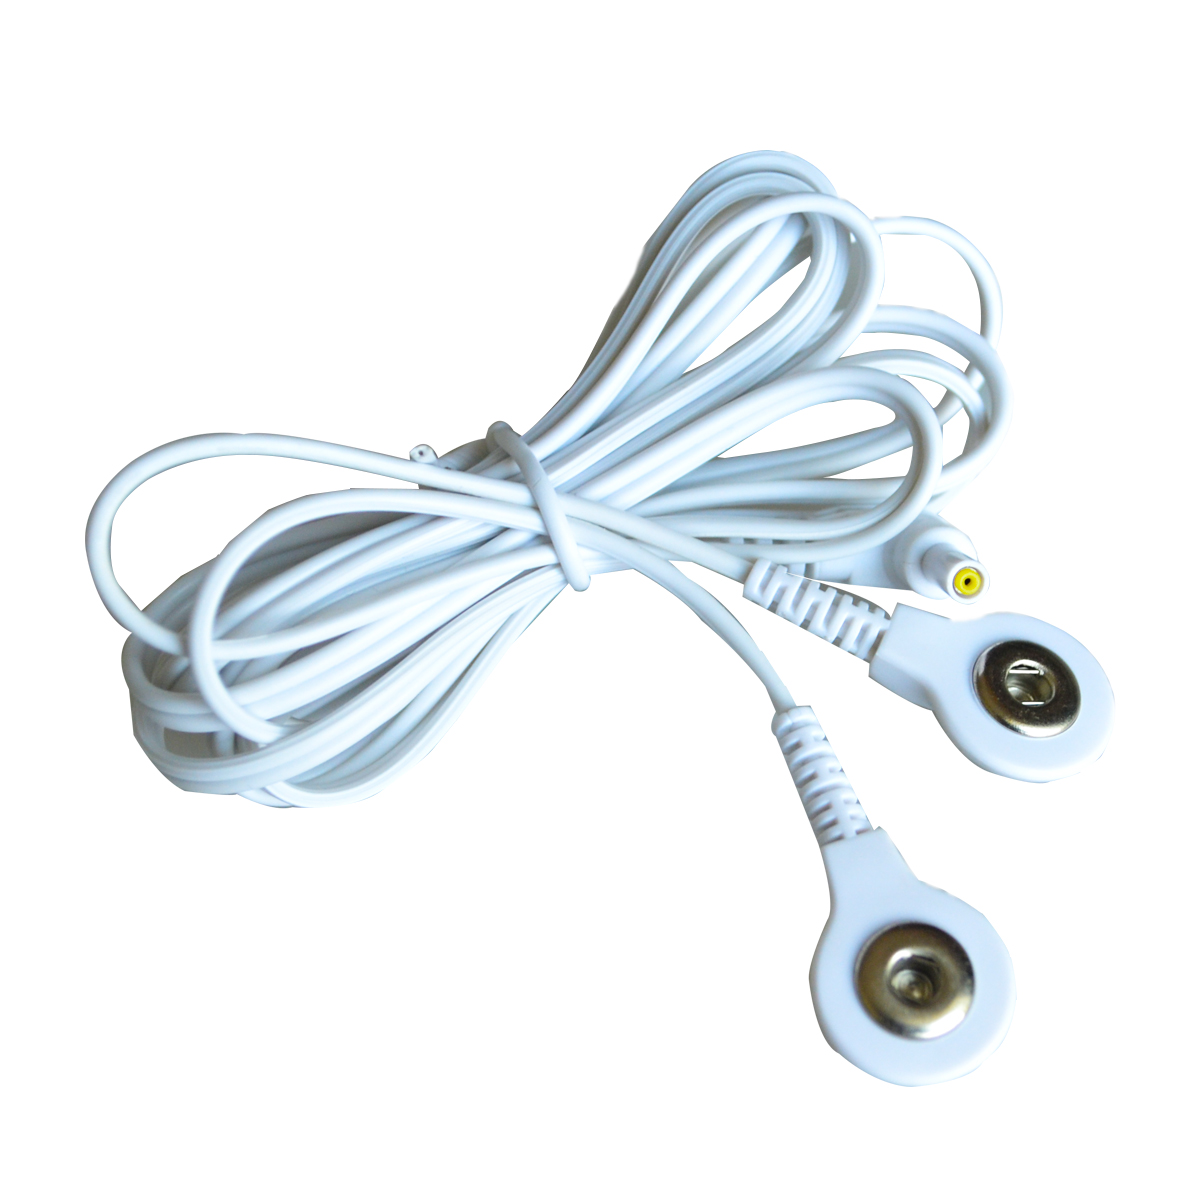 Wholesale 100Pcs/Lot Electrode Lead Wires Plug 2.35mm Connecting Cables with 2 Buttons For TENS 7000 Electronic Therapy Machines 100pairs lot 3 5mm snap tens electrode lead wires connecting cables plug 2 5mm use for connect tens ems massager machine device